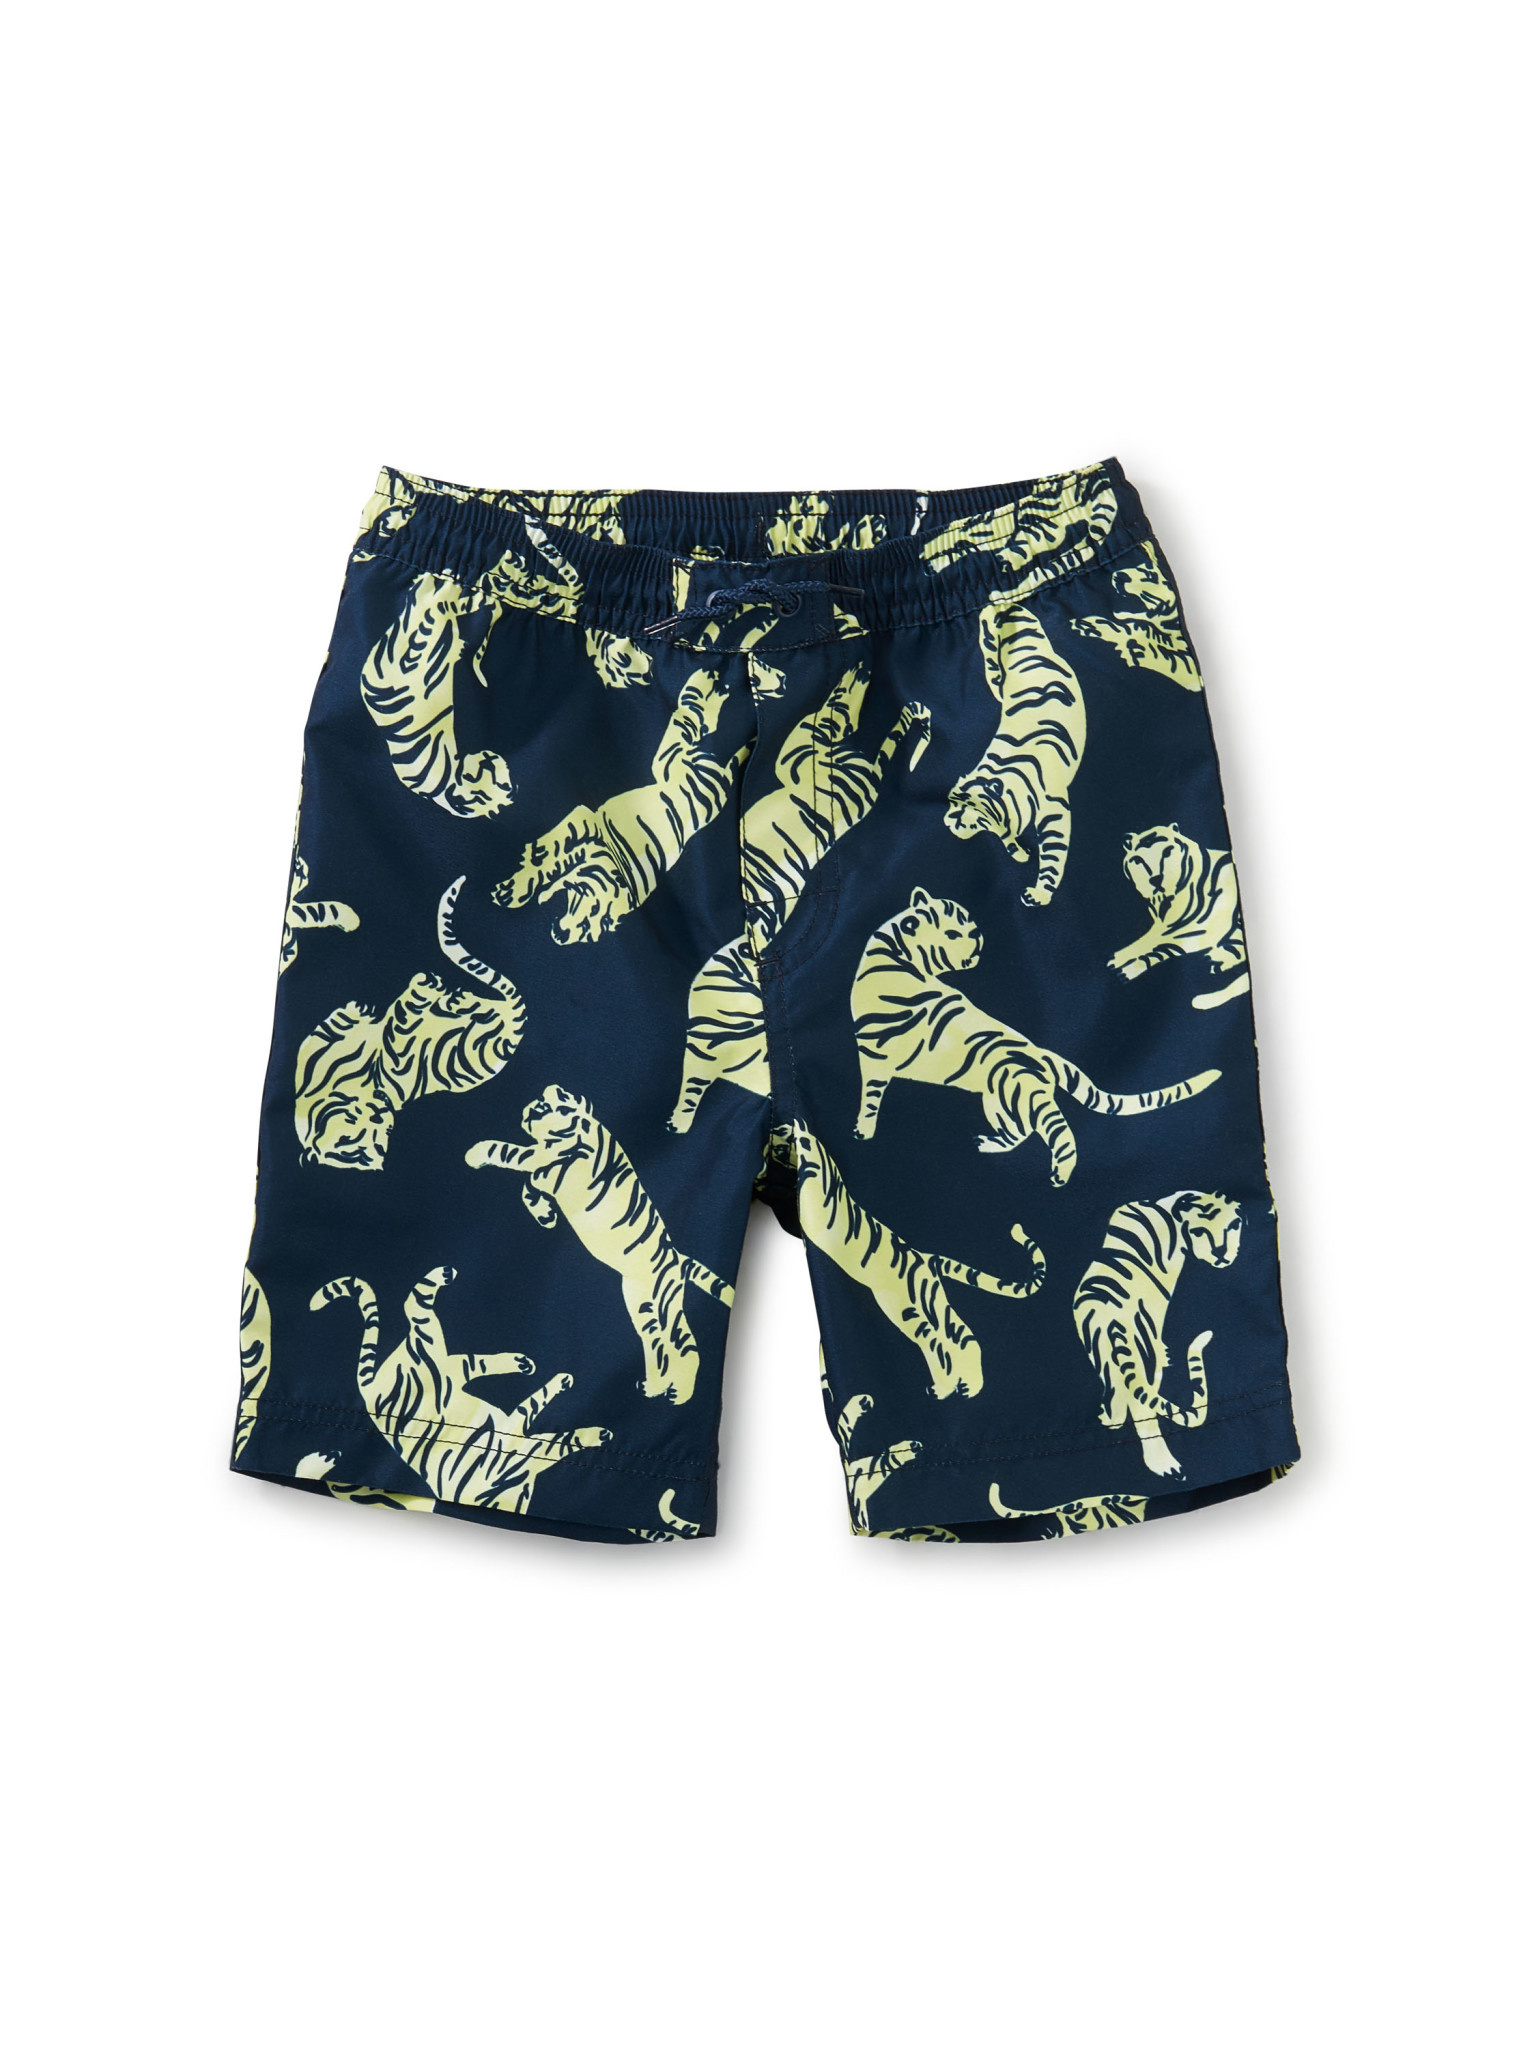 Tea Collection Full-Length Swim Trunk- Tossed Tigers